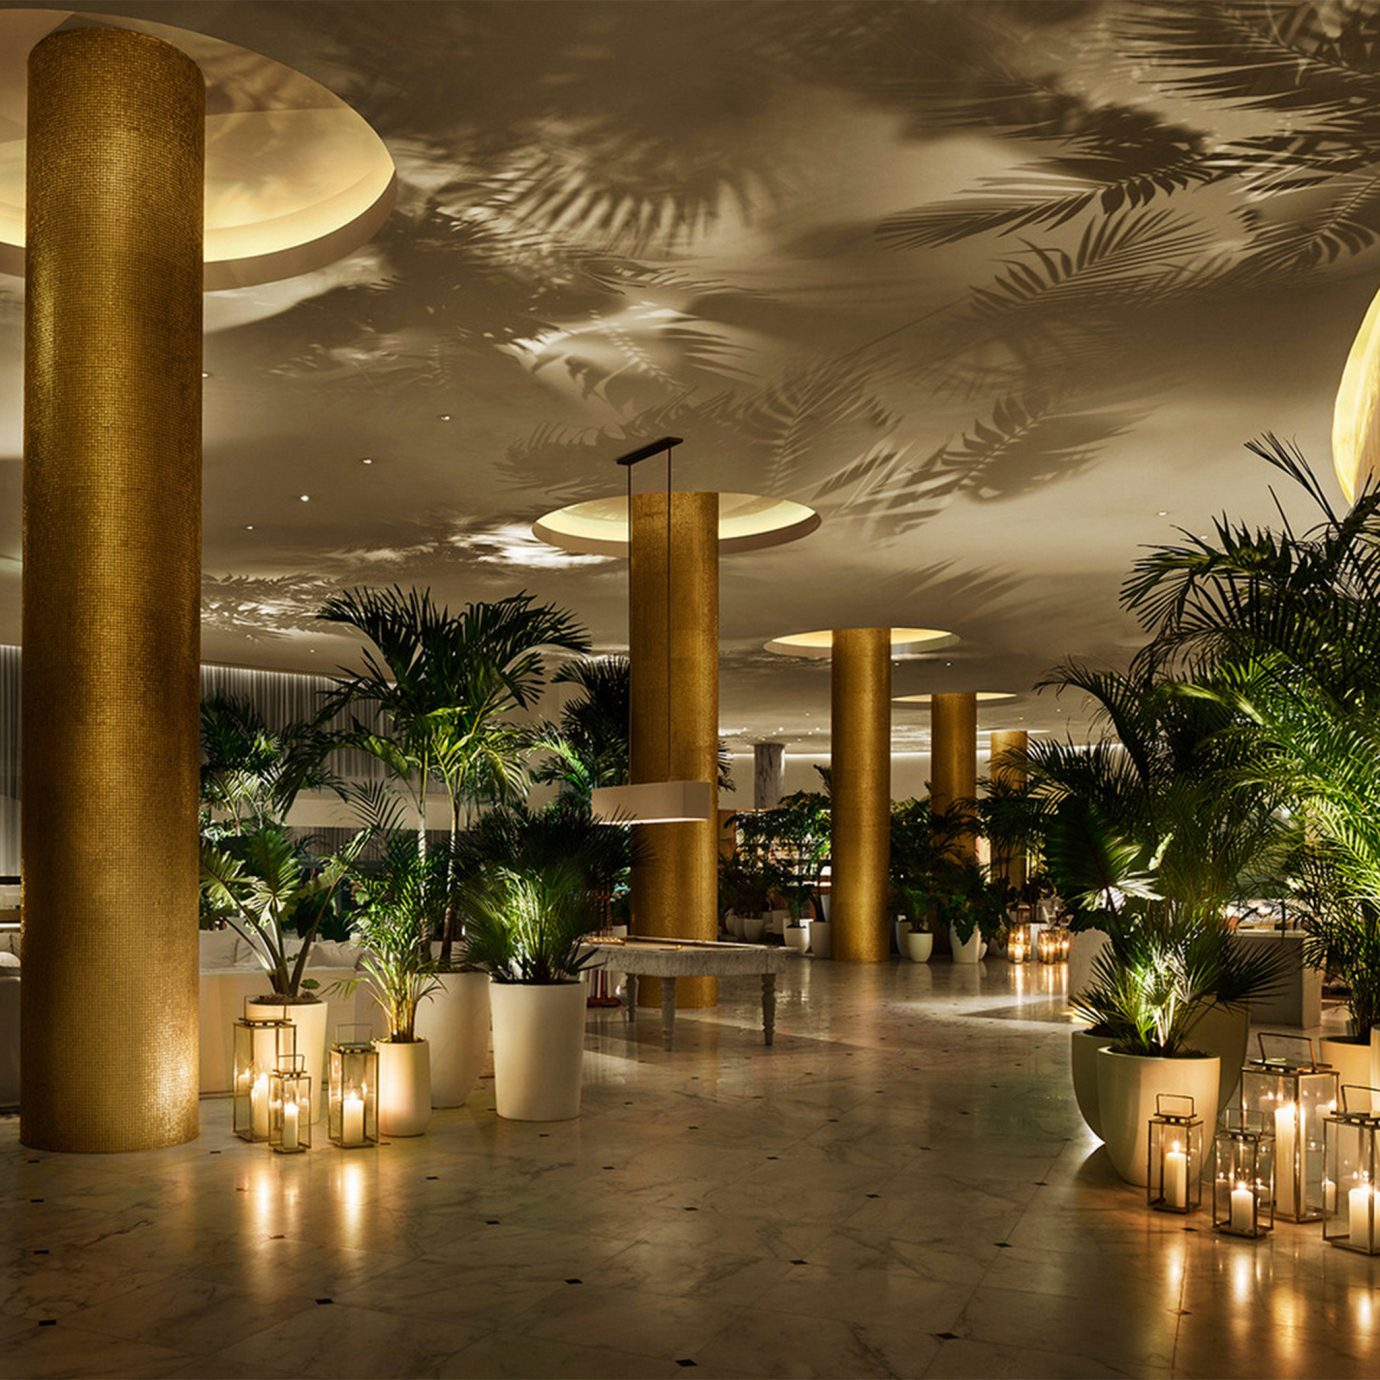 Lobby night lighting restaurant arecales evening Resort landscape lighting